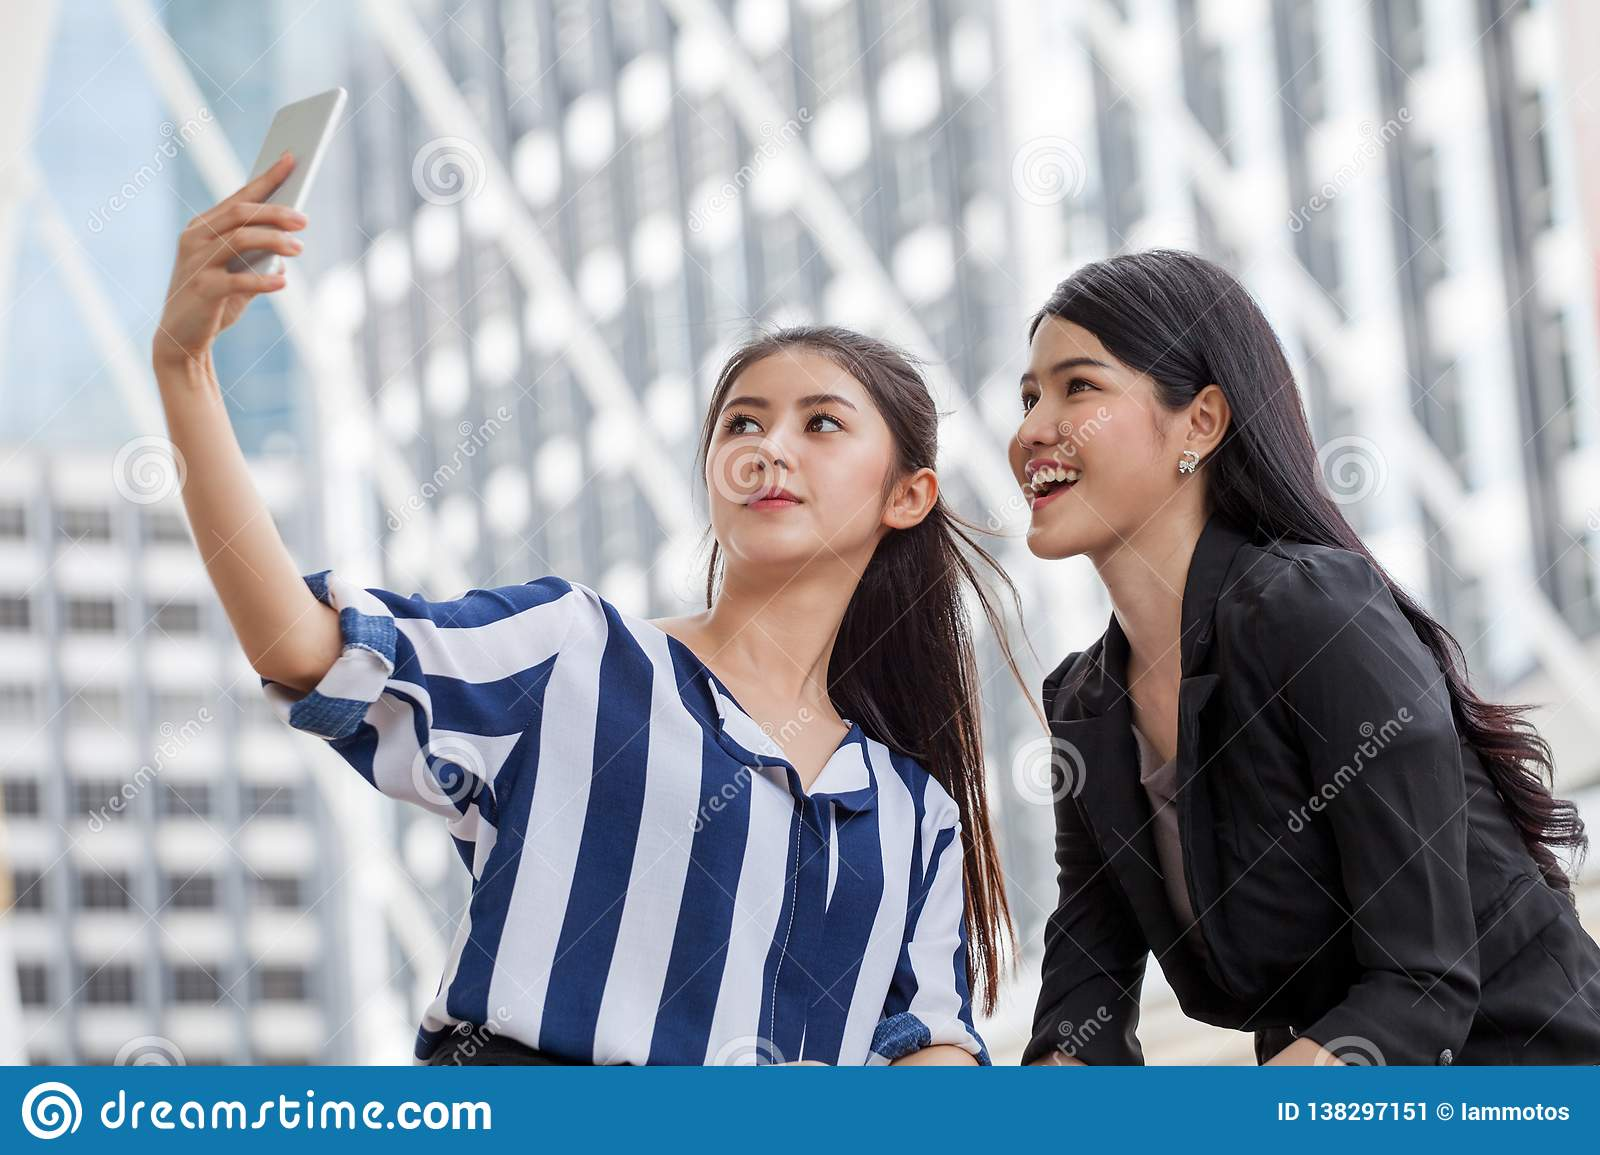 Two asian girls friends taking selfie photo with smartphone in urban